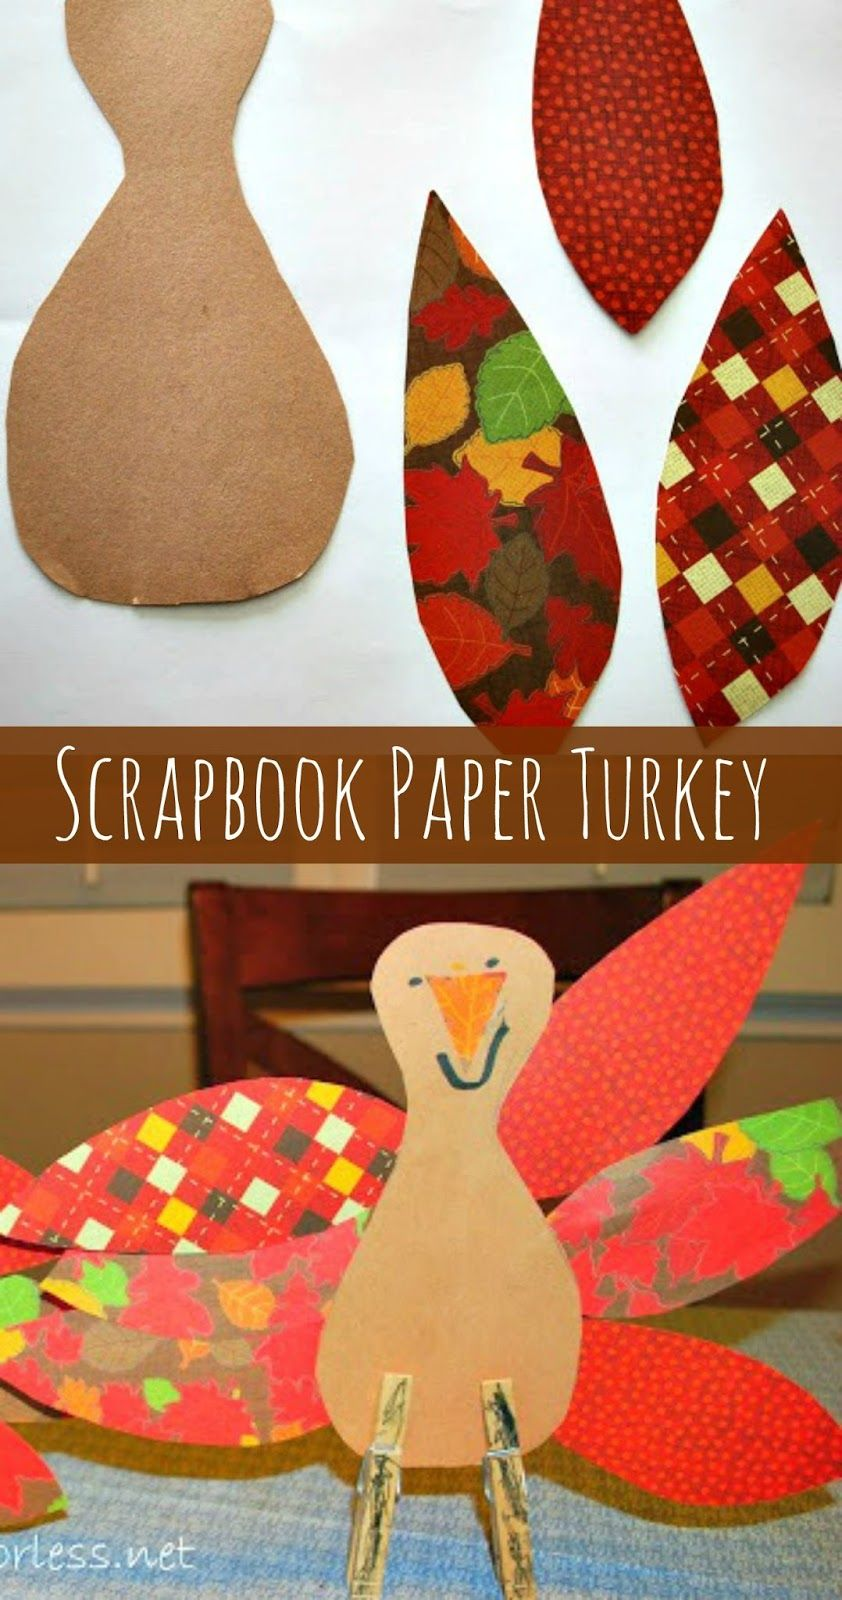 How to make scrapbook on facebook - Mess For Less Scrapbook Paper Thanksgiving Turkey Craft I Just Like The Idea Of Using Clothes Pins To Make Crafts Stand Up